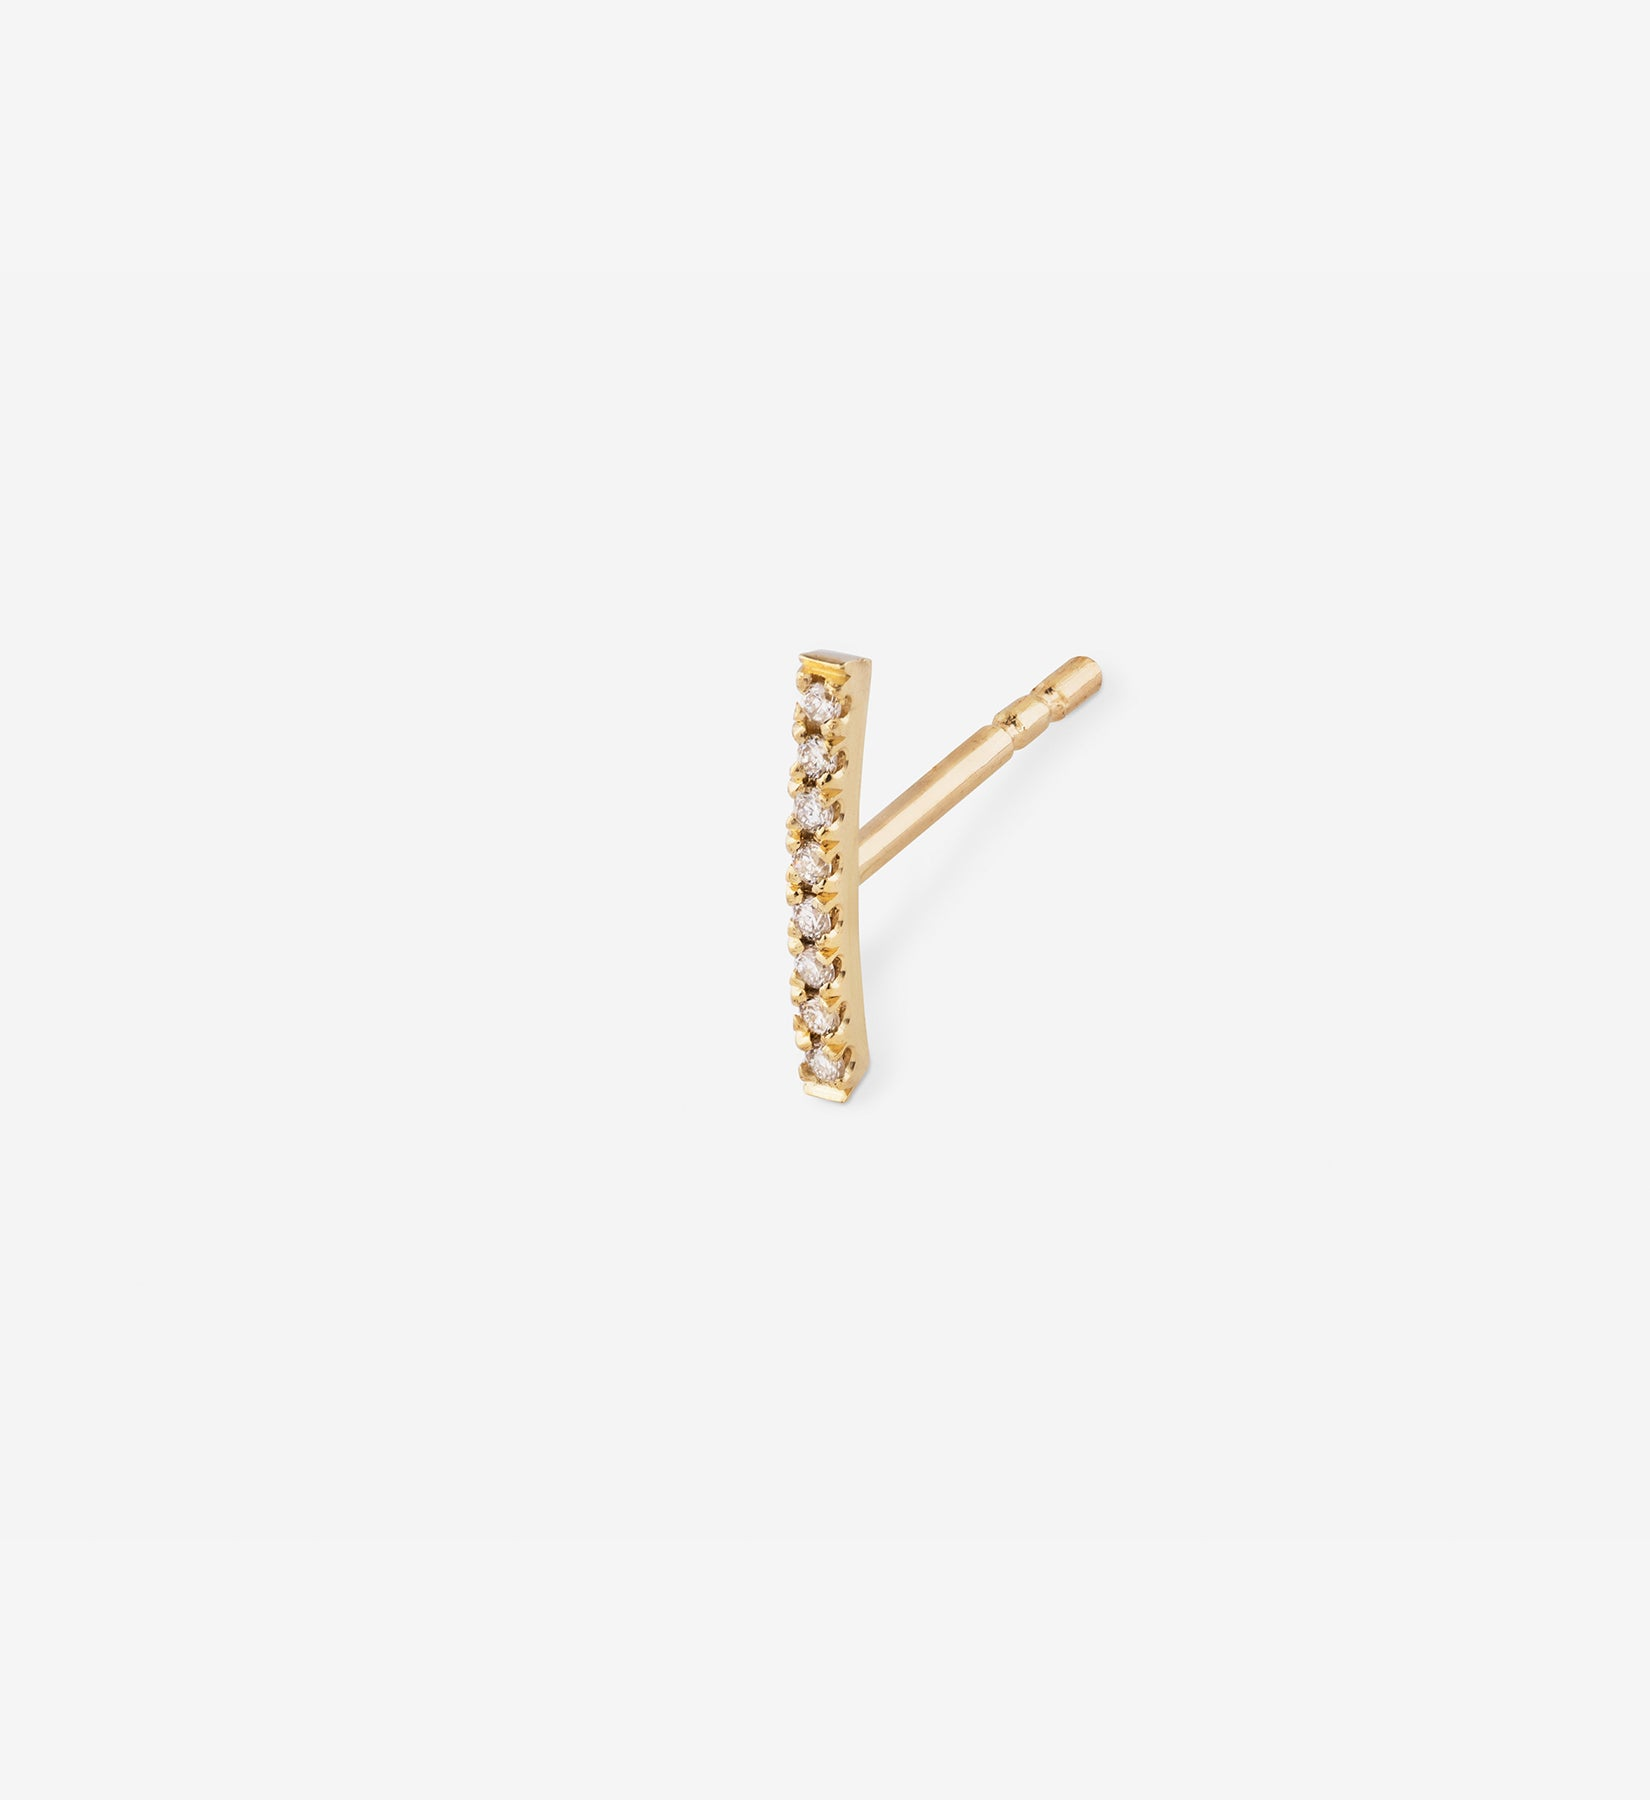 Diamond Line Earring 0.04 in 14K Gold - Single